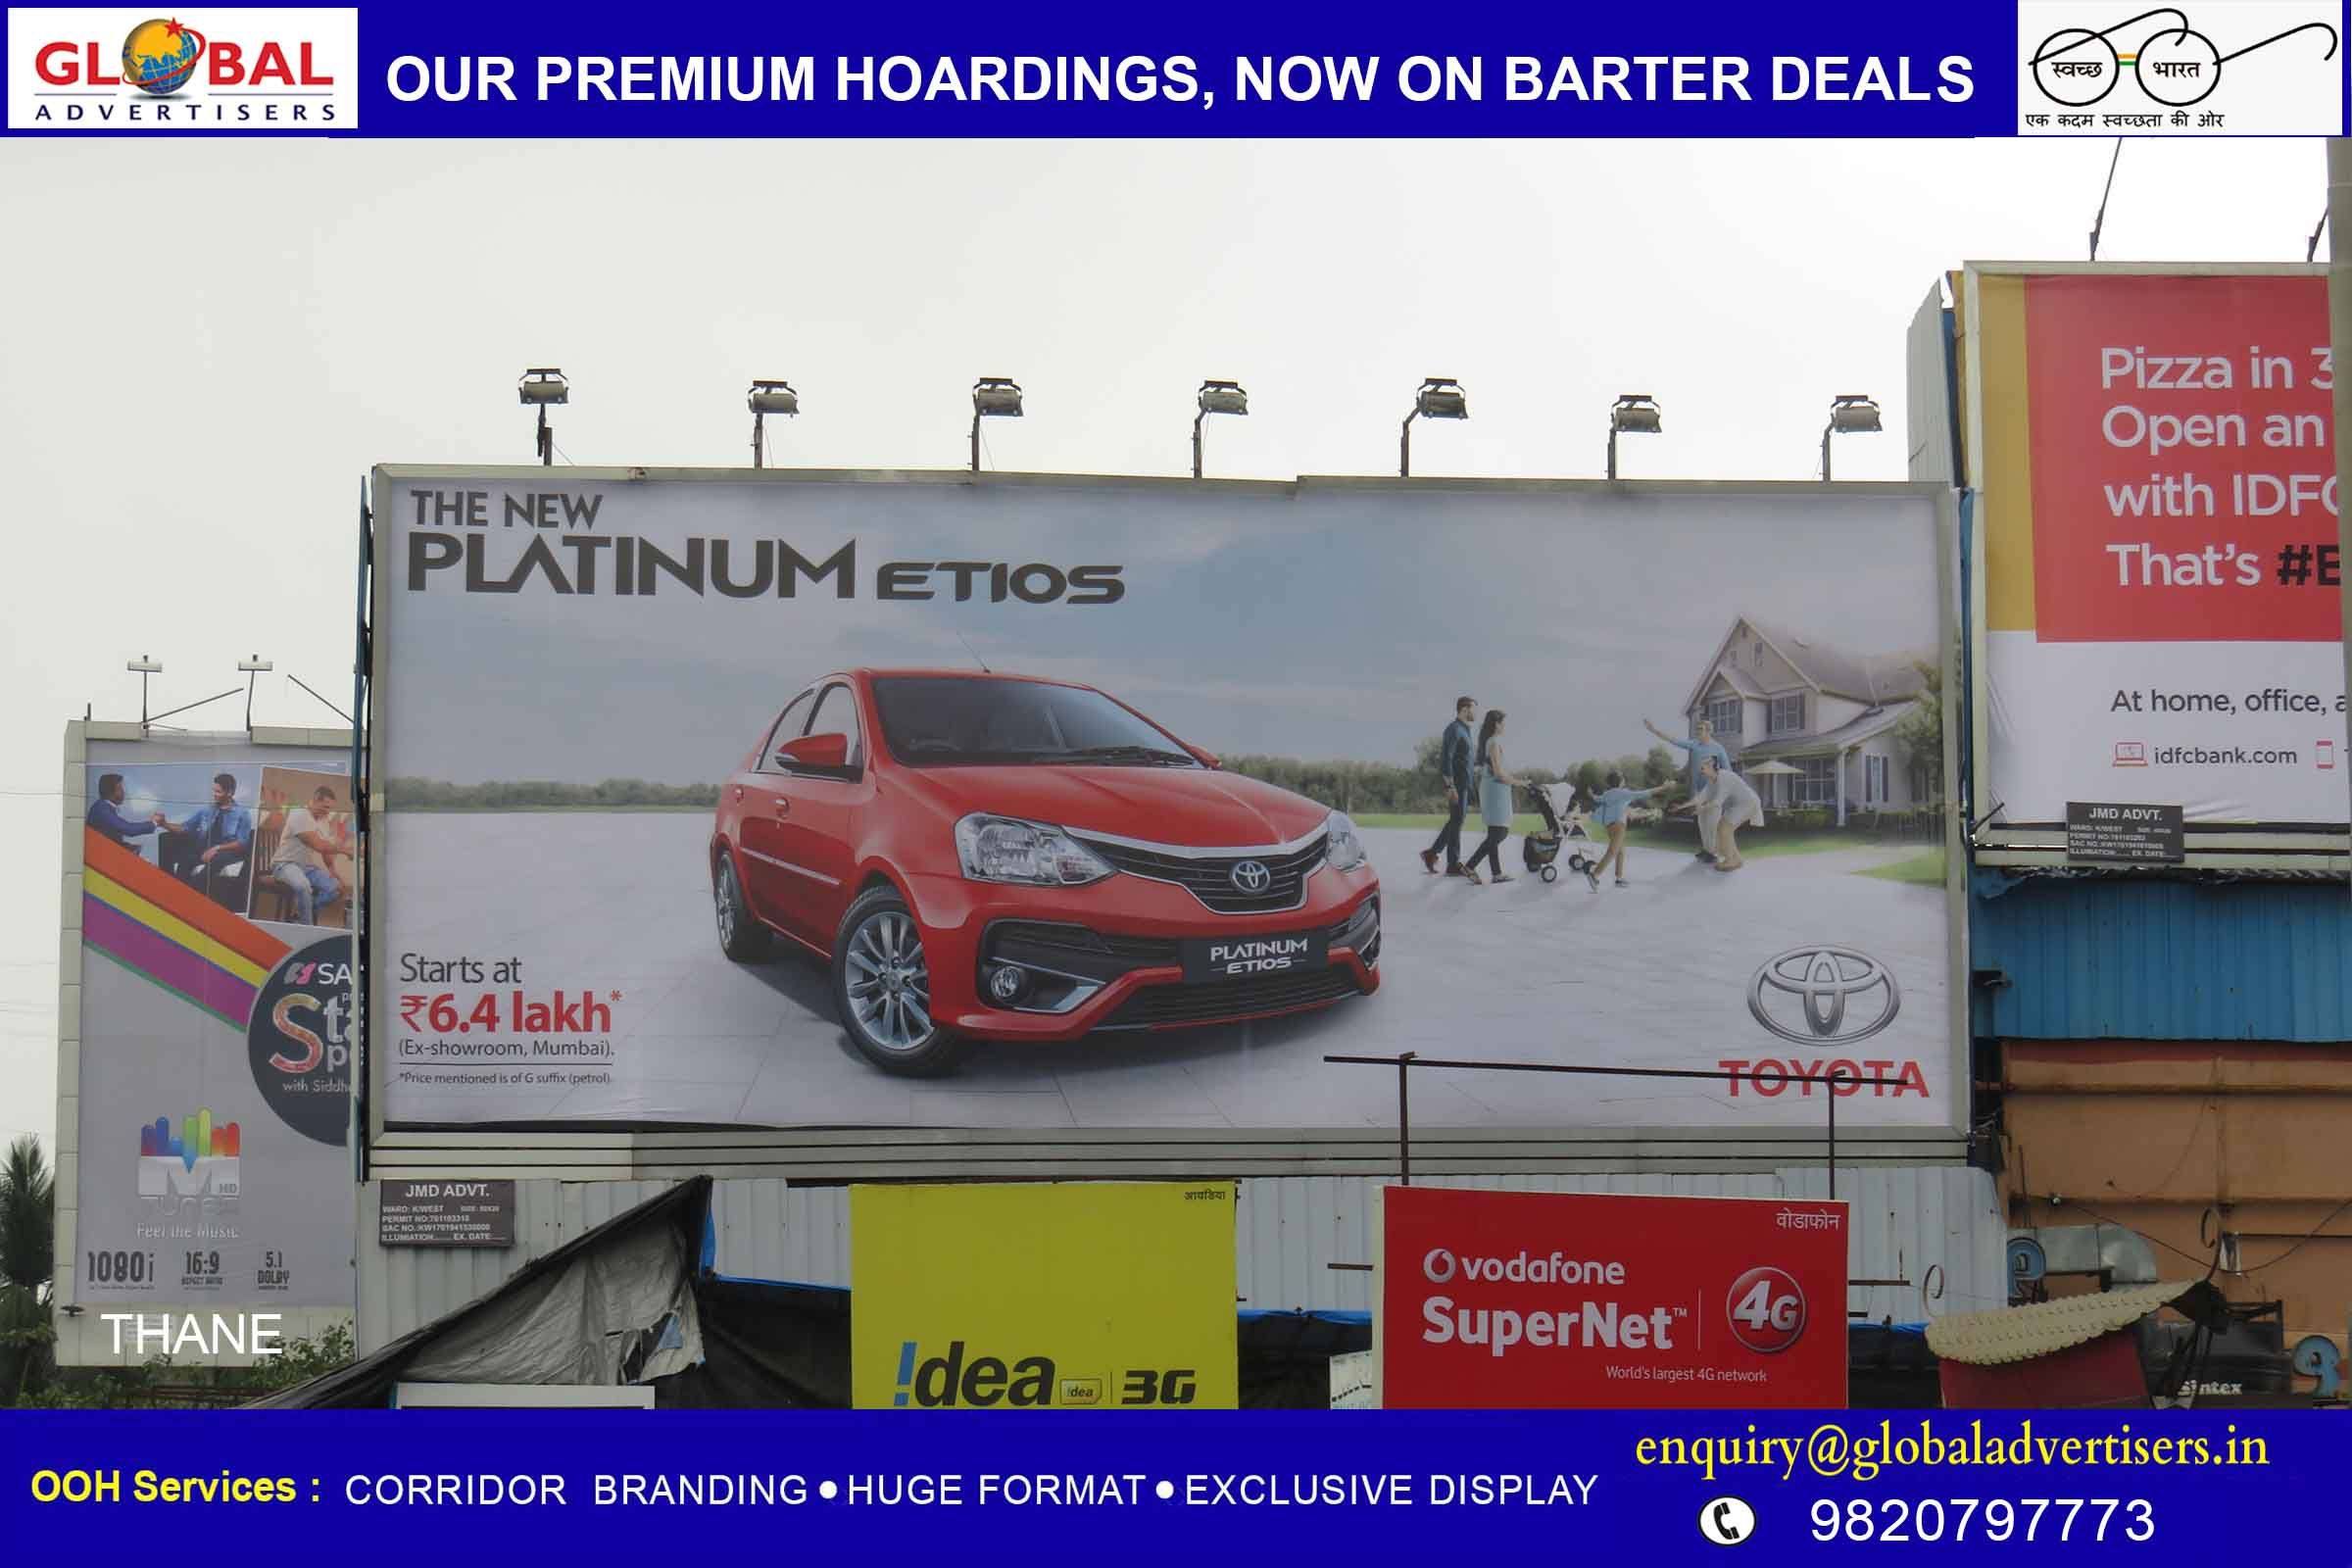 Global Advertisers Puts Up Hoardings For Luxury Car Brand Toyota